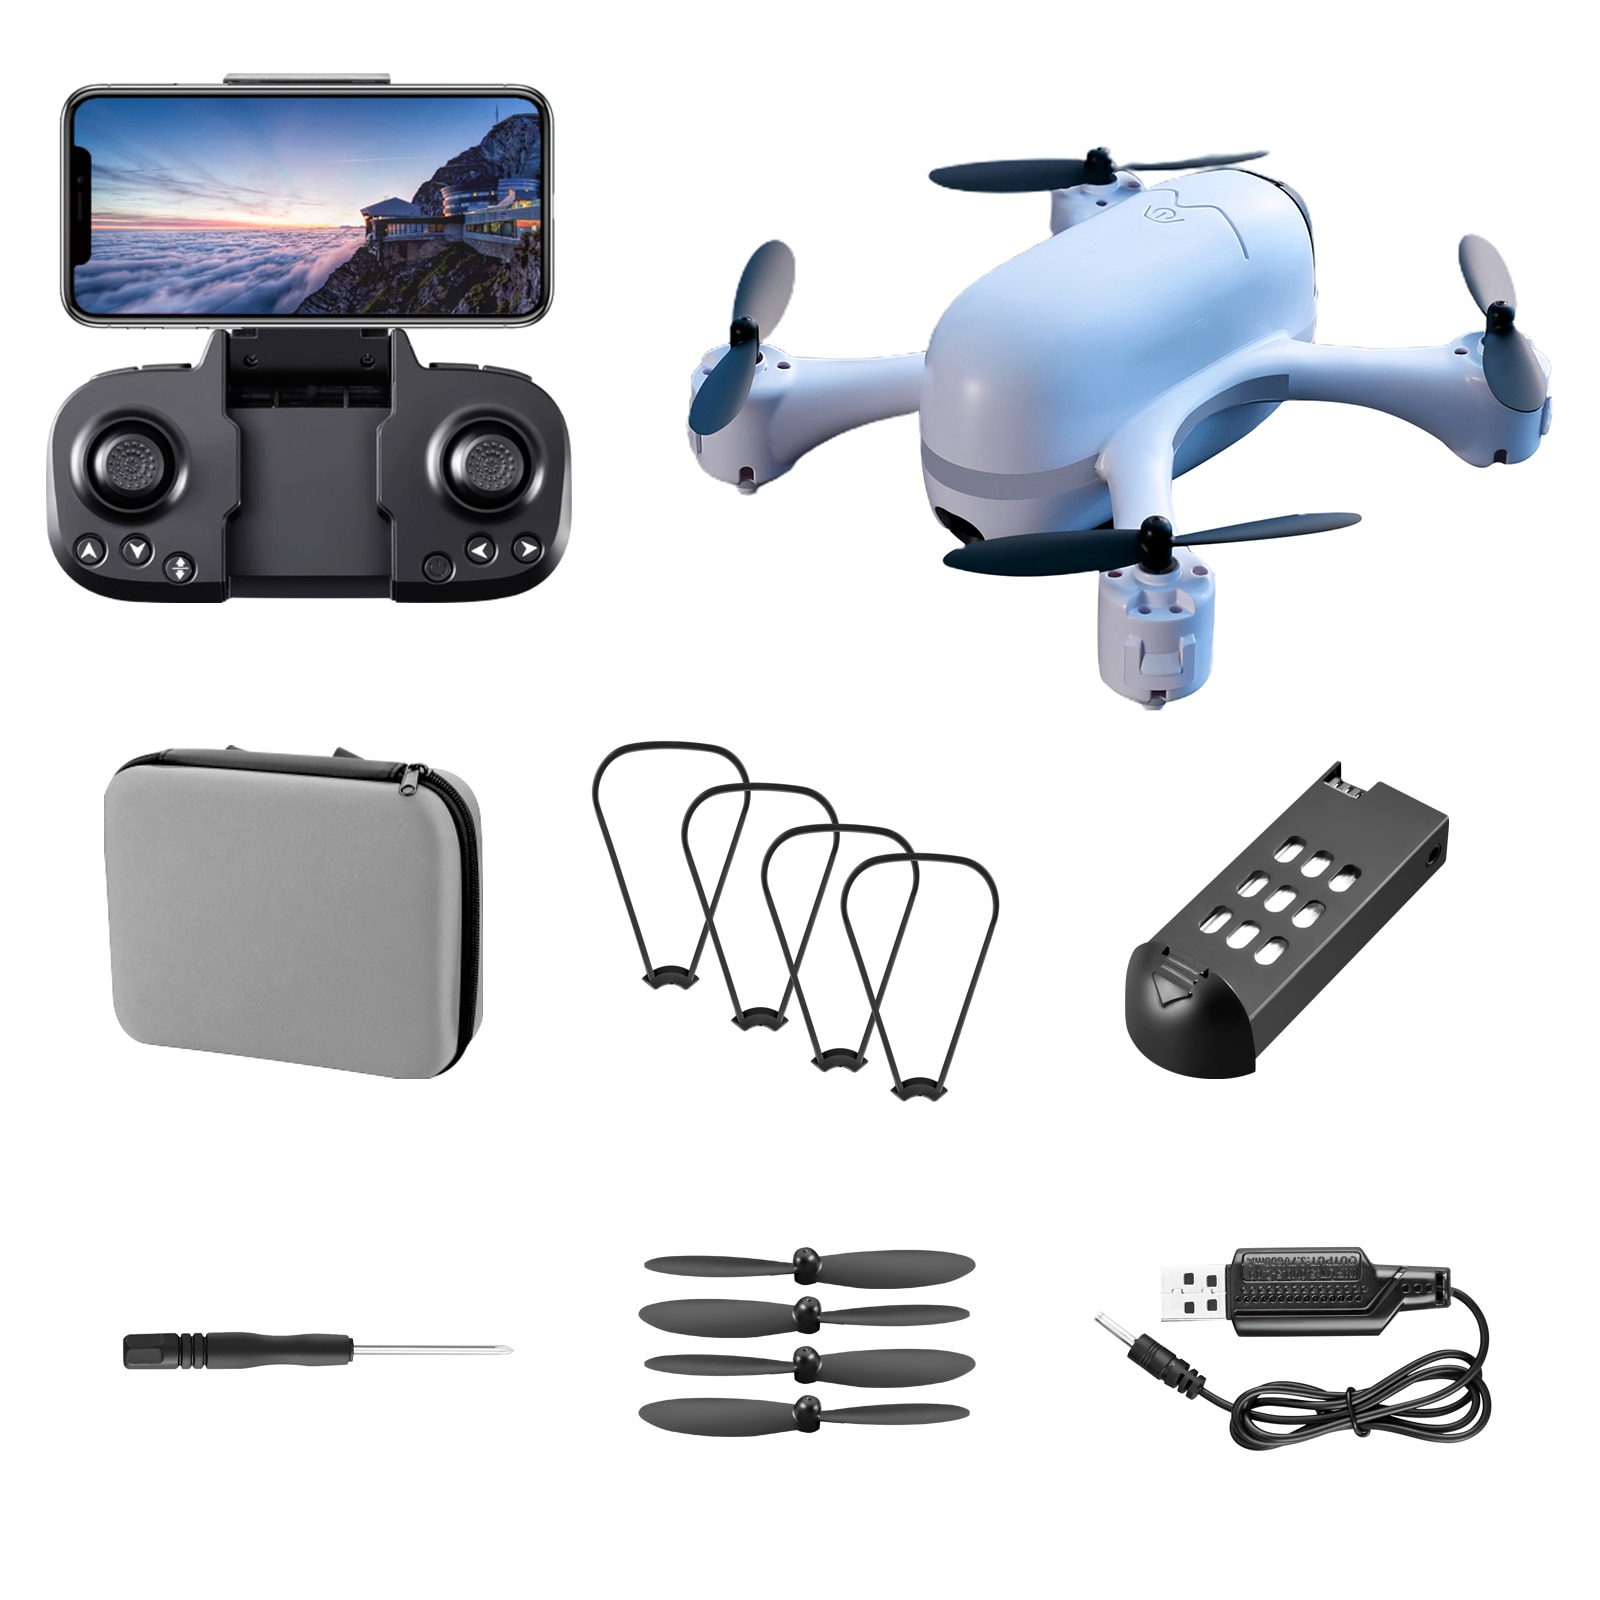 NEW S88 Drones 4K HD Dual Camera With Optical Flow Positioning RC Helicopter Profesional Quadcopter Boys Toys Christmas Gifts enlarge